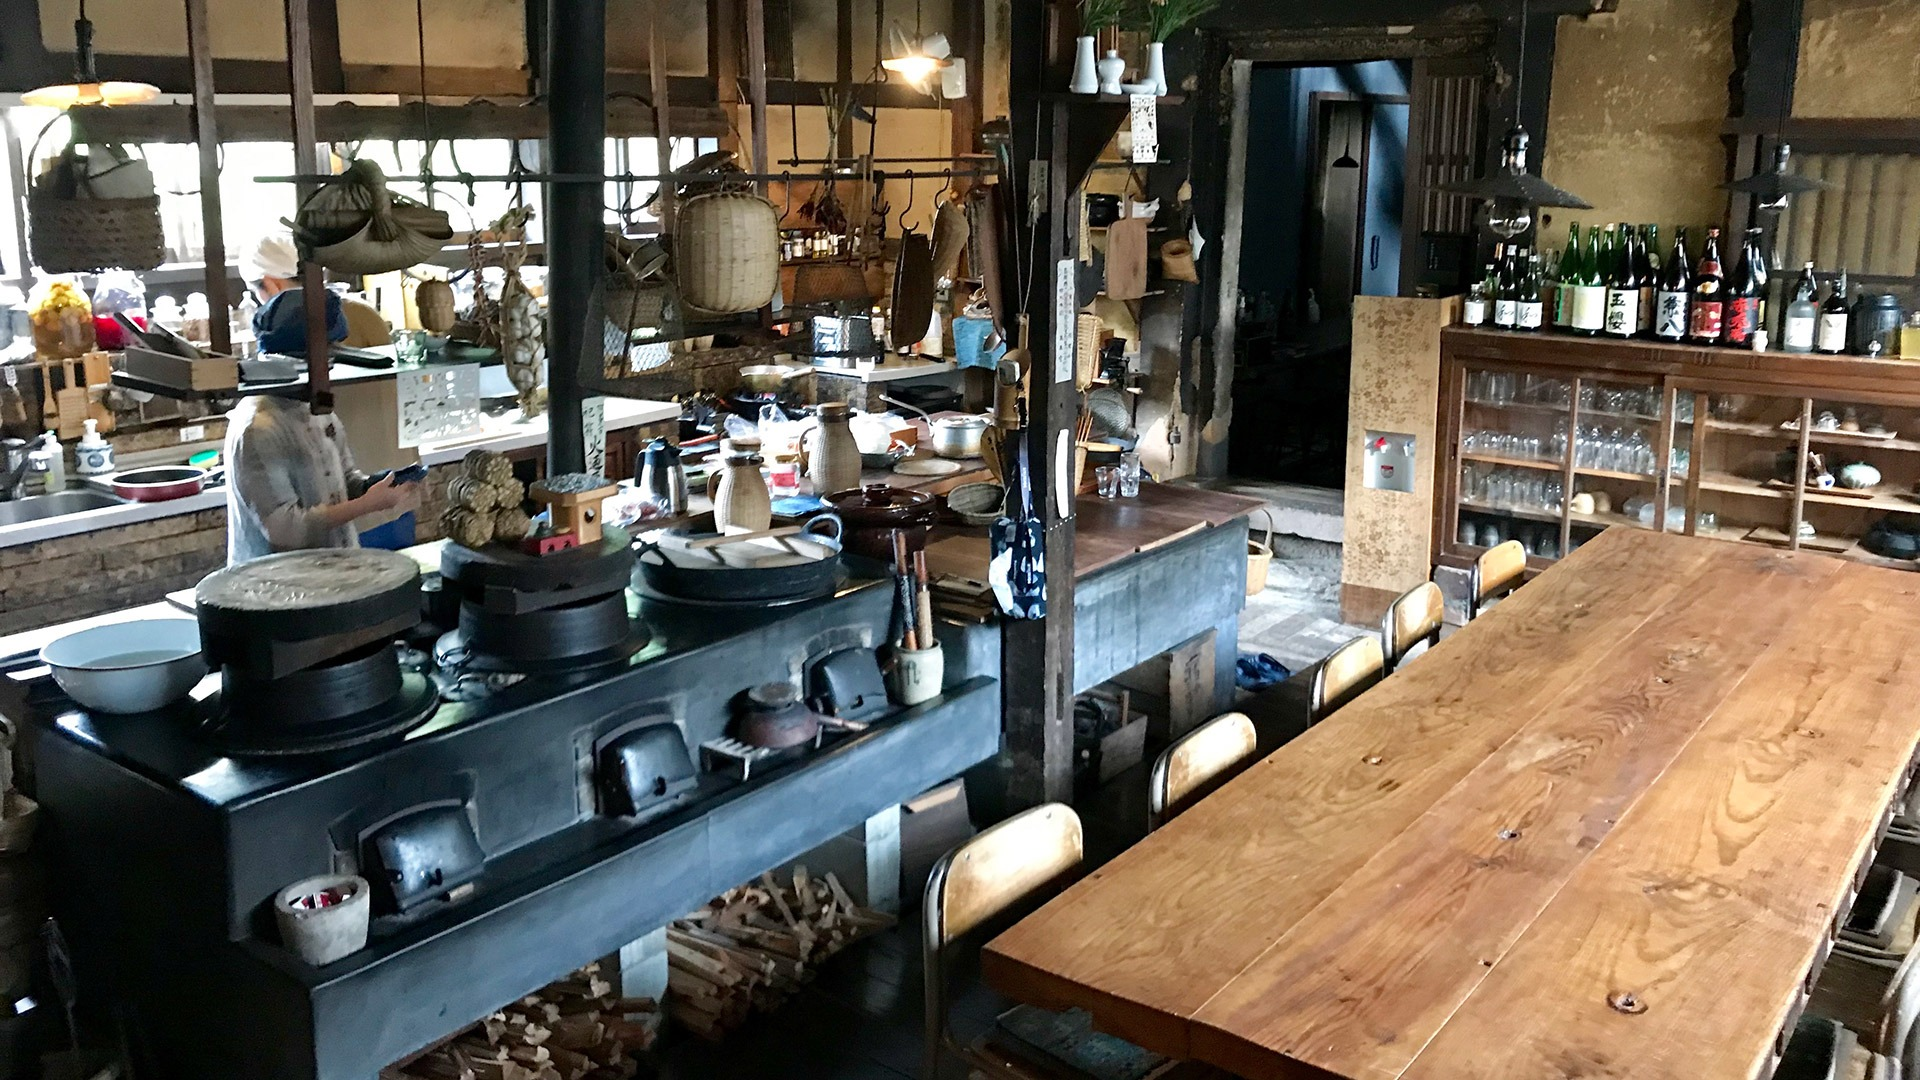 The kitchen and dining area of Takyo Abeke in Omori, Japan